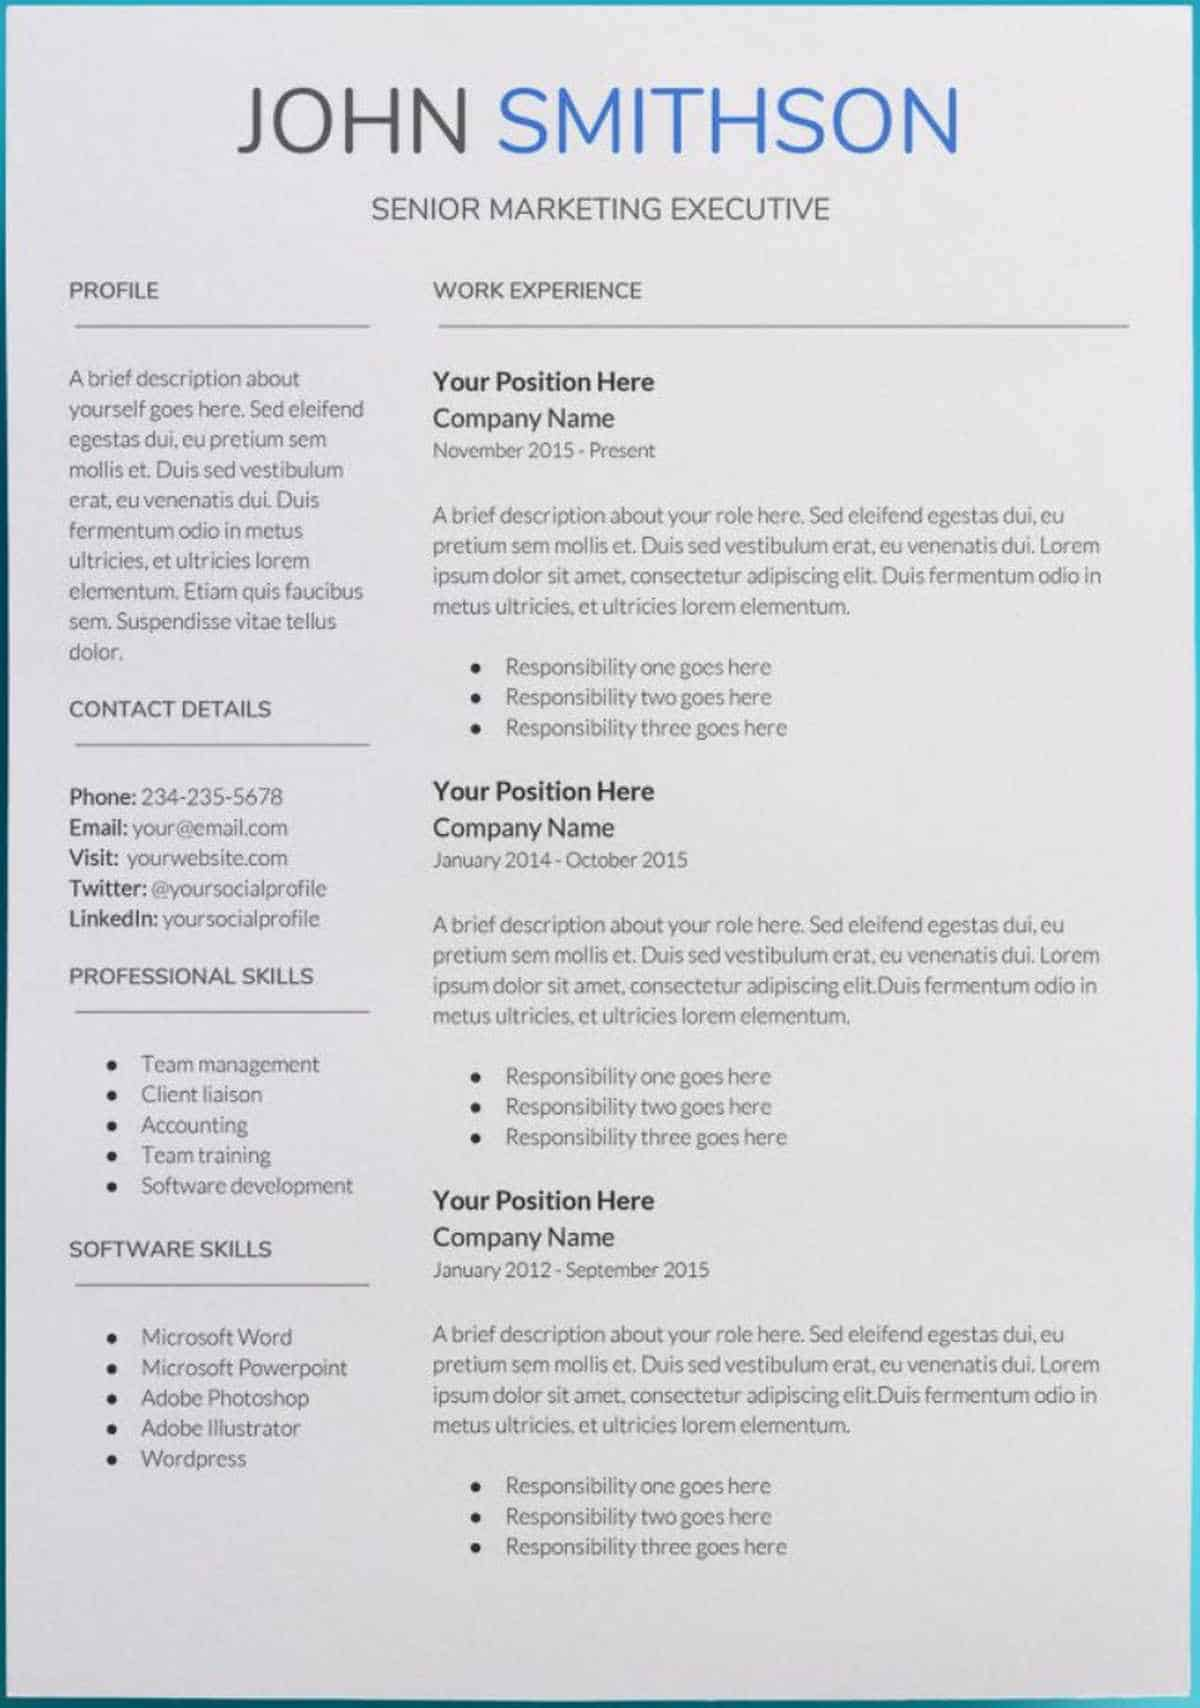 Editable Google Docs Resume Template